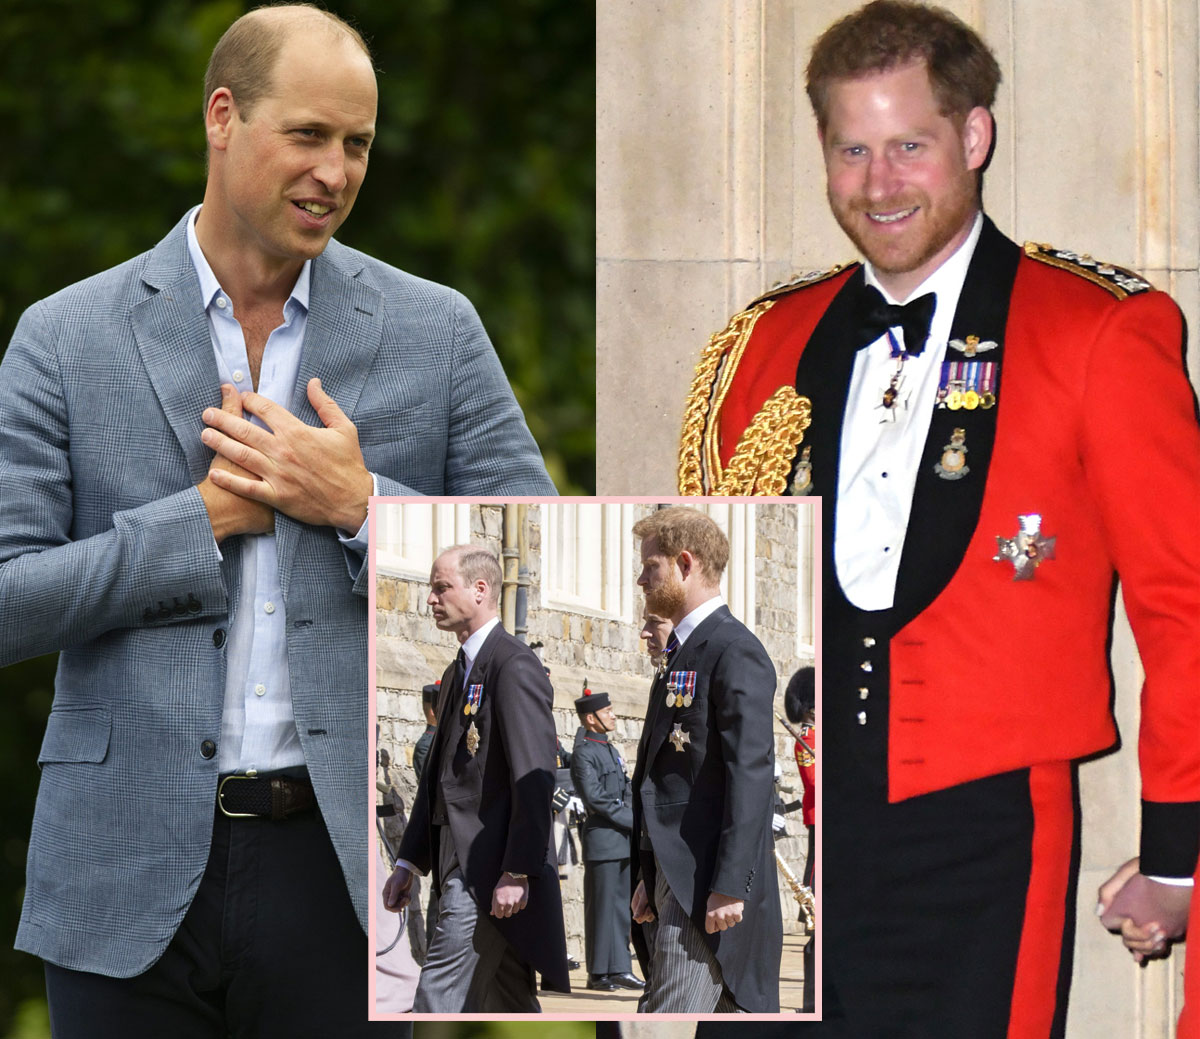 Prince William & Prince Harry During Prince Philip's Funeral — How Did They Manage?